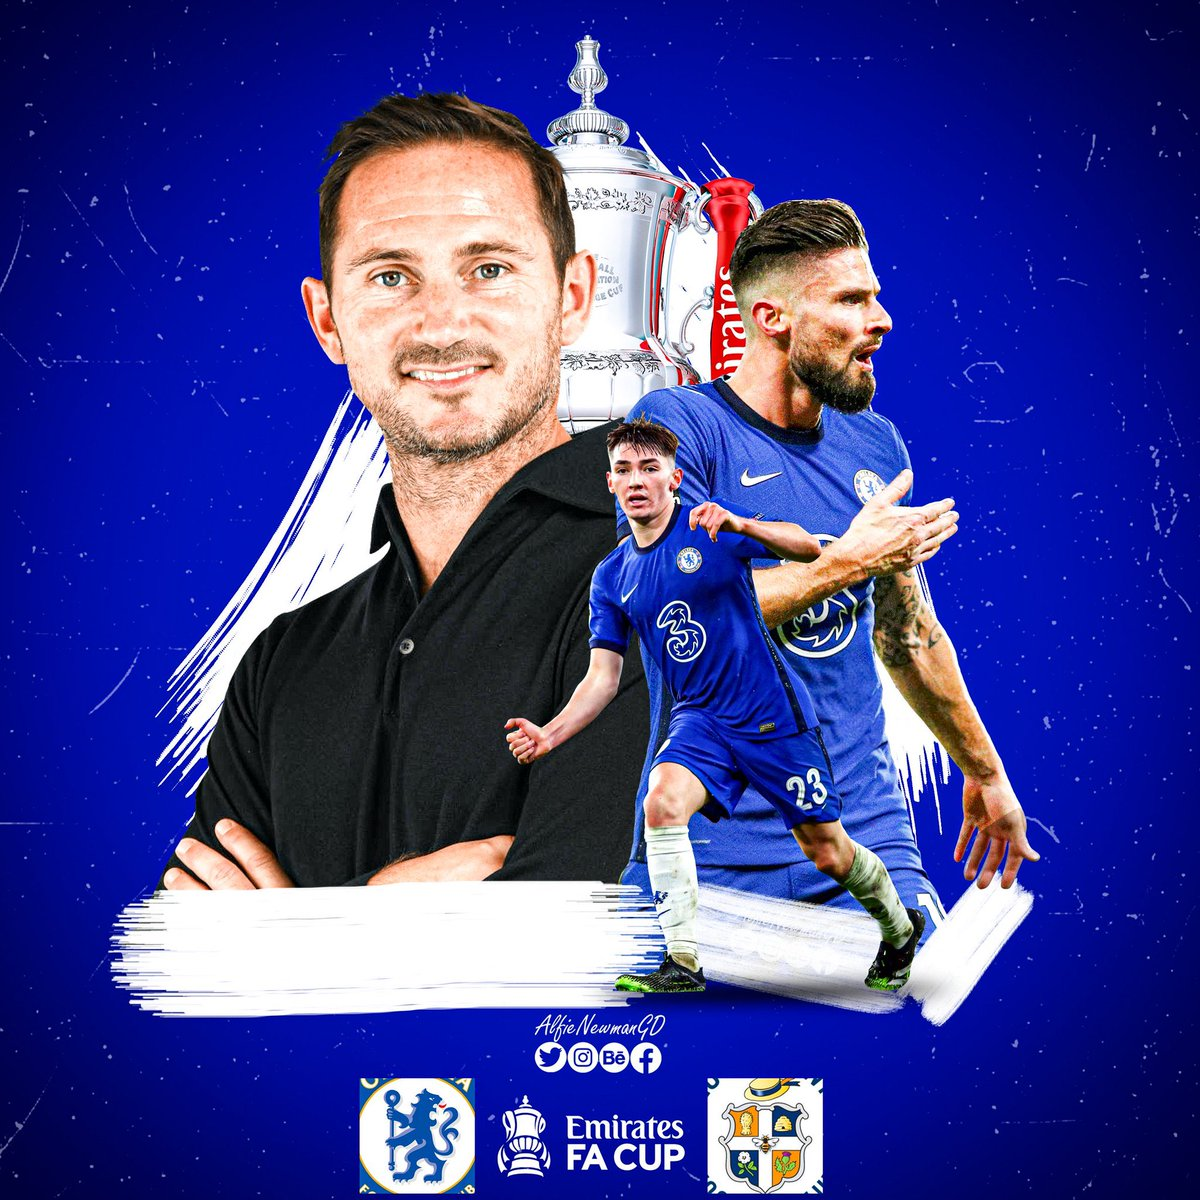 Looking forward to tomorrow's @EmiratesFACup game against @LutonTown. #CHELUT 📸:- @AlfieNewmanGD